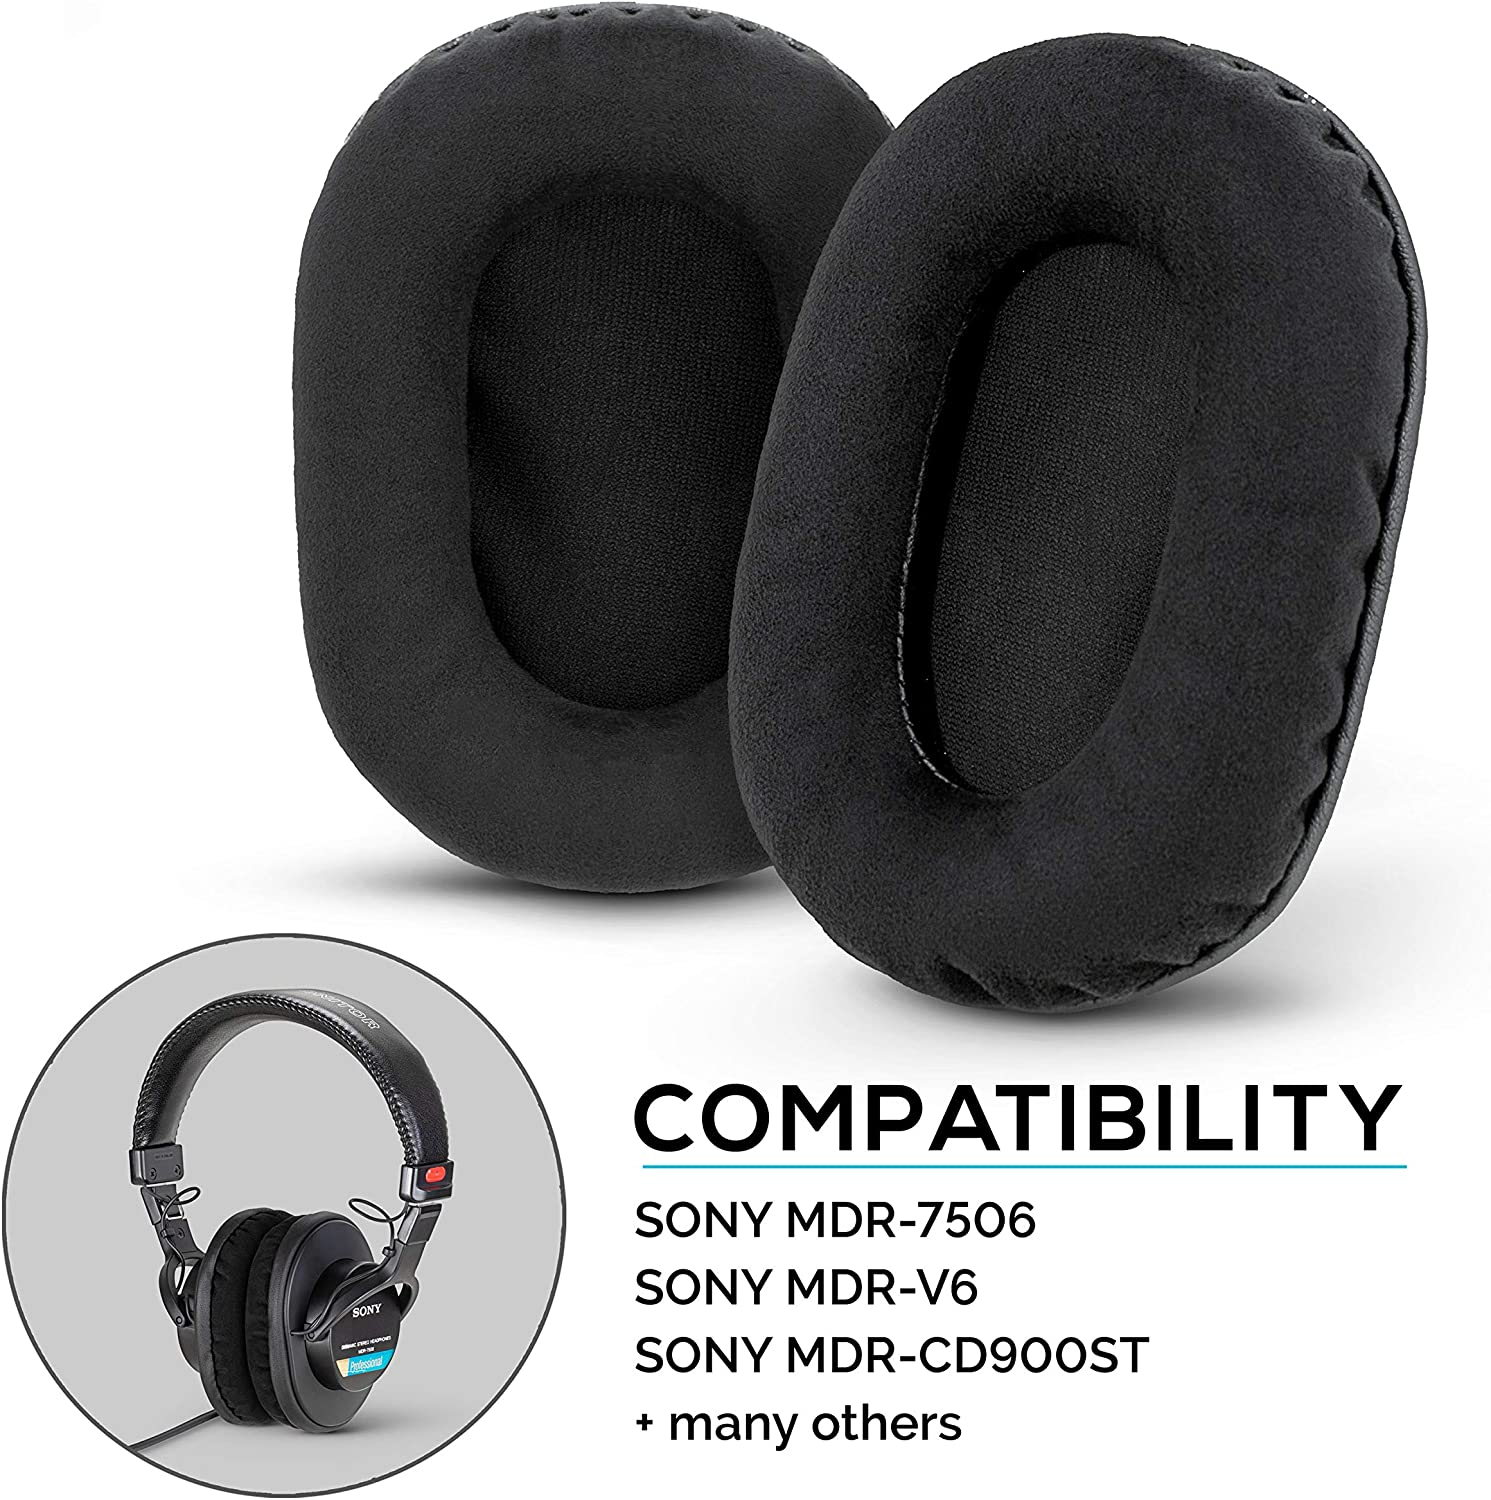 Brainwavz Micro Suede Earpads for Sony MDR 7506, V6, CD900ST, Memory Foam Ear Pad & Suitable for Other On Ear Headphones, Micro Suede Black